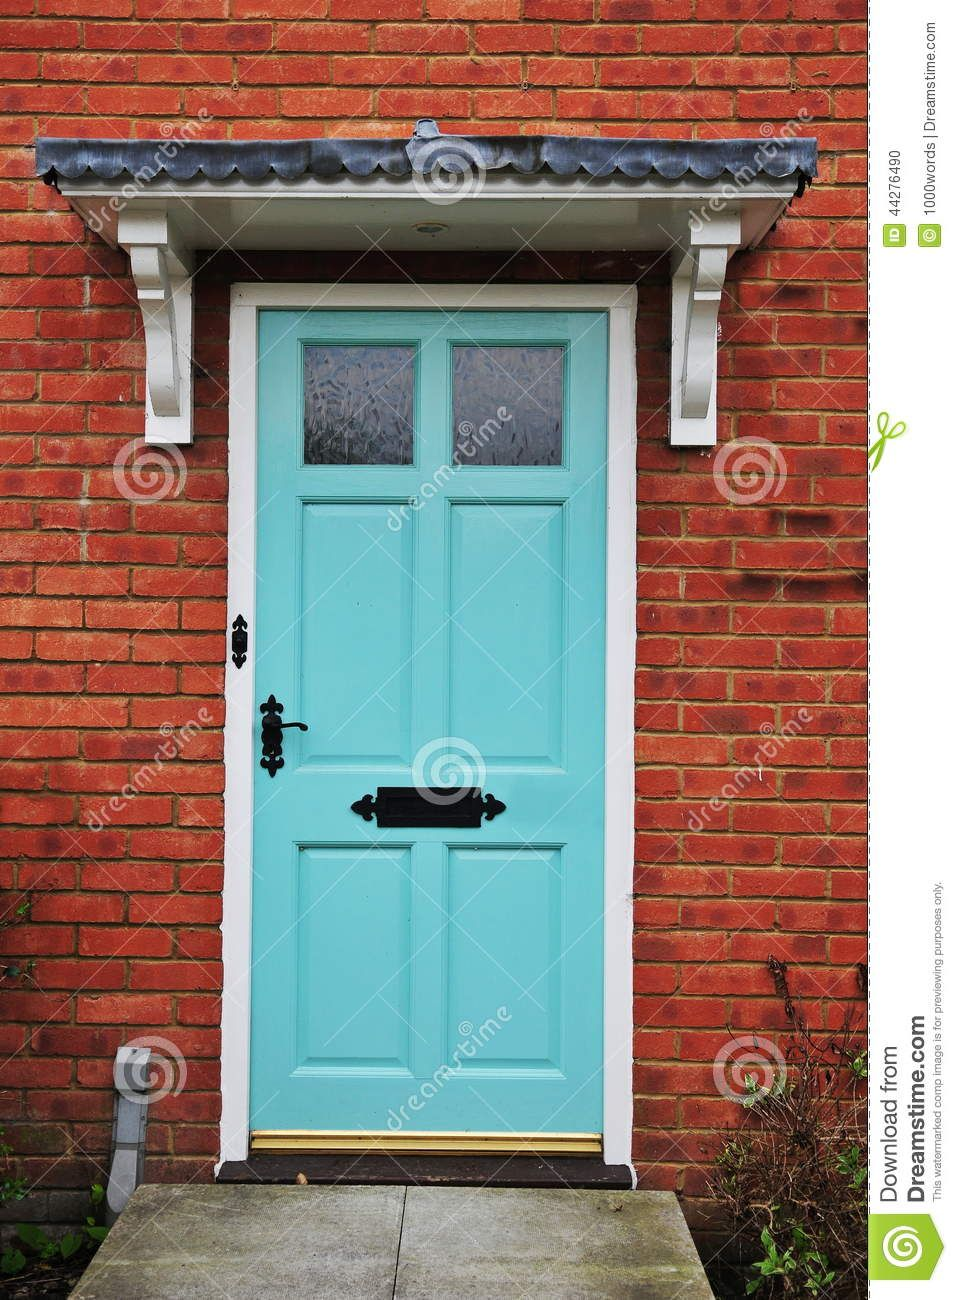 What color should i paint my front door if my house is red - Front door colors for brick houses ...